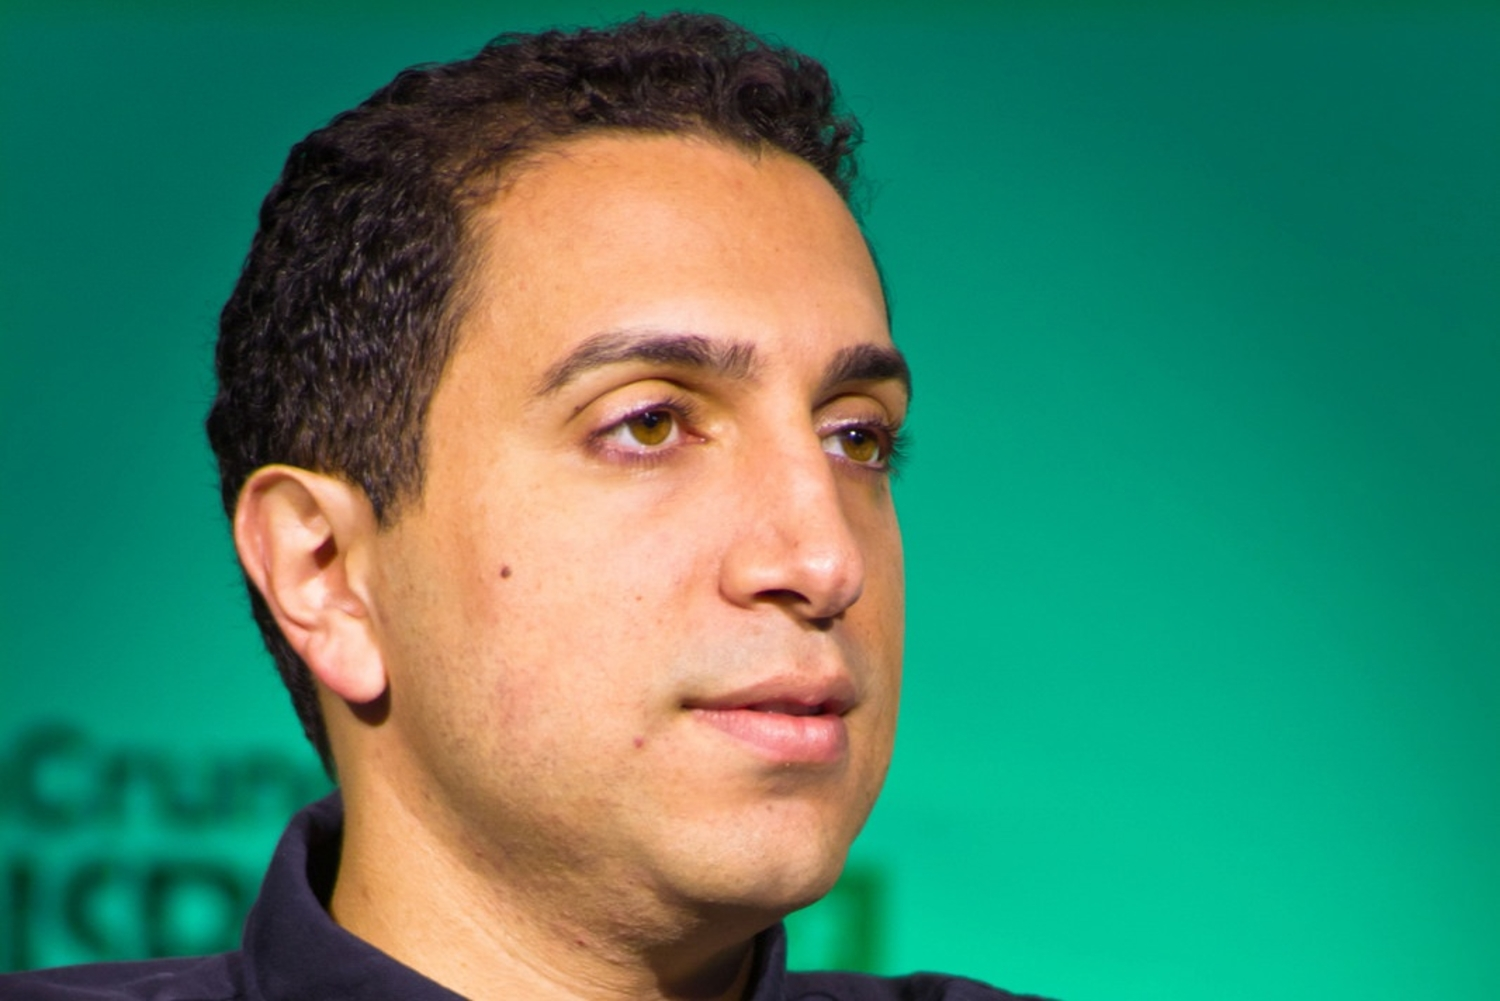 Tinder Swipes Left For Founding CEO